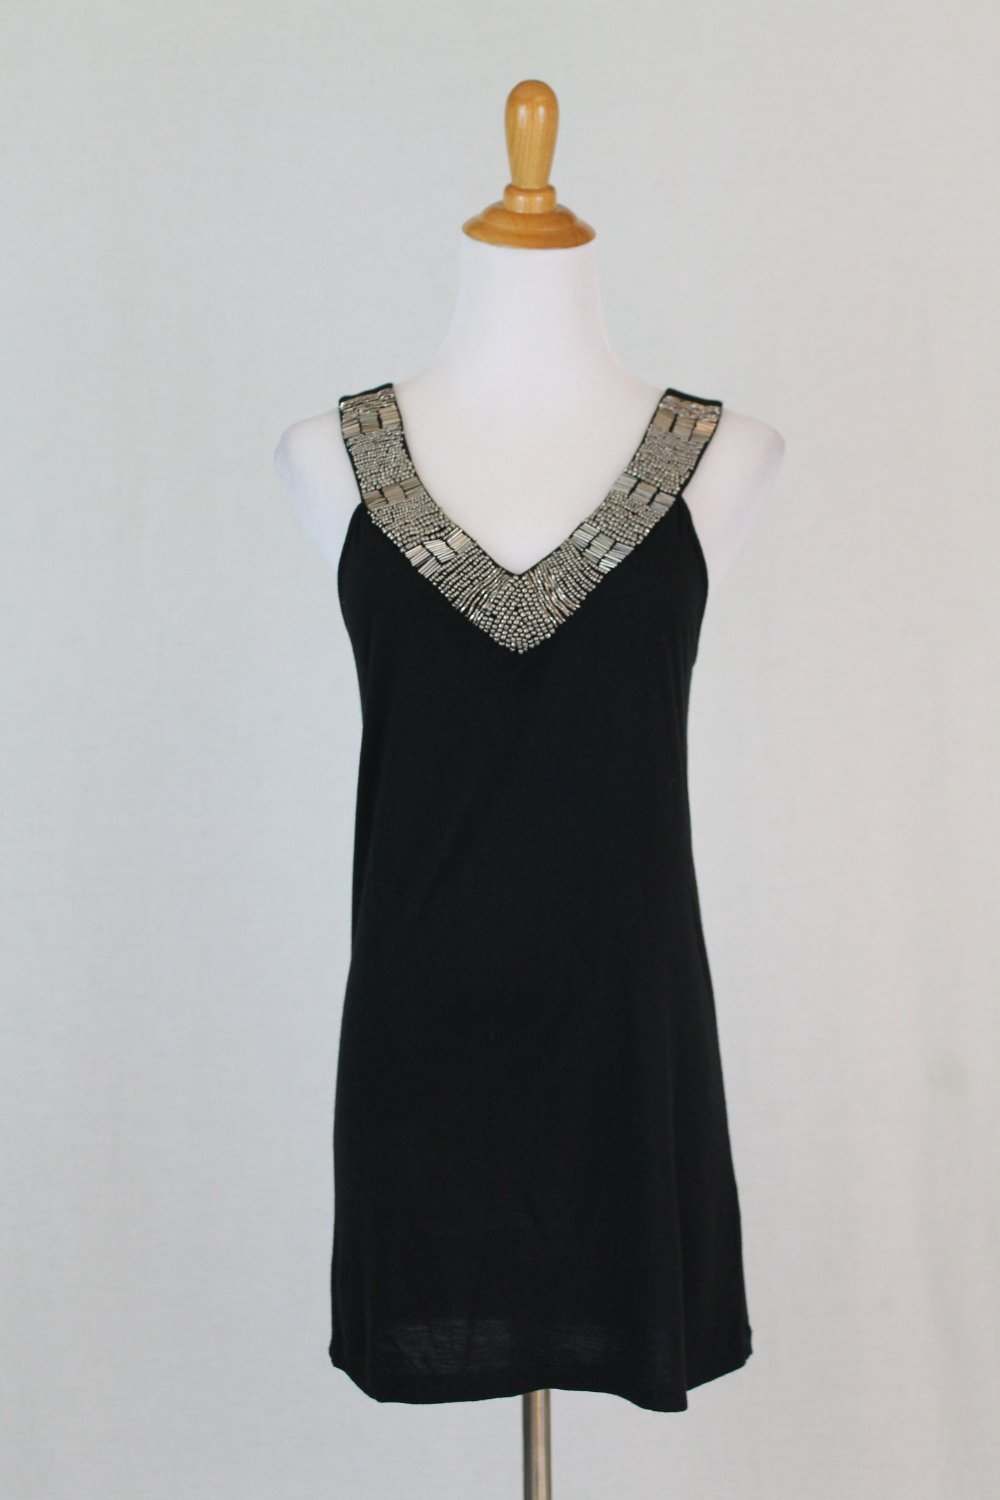 CYNTHIA ROWLEY Silver & Gold Beaded Black Jersey Sleeveless Evening Top S NWOT